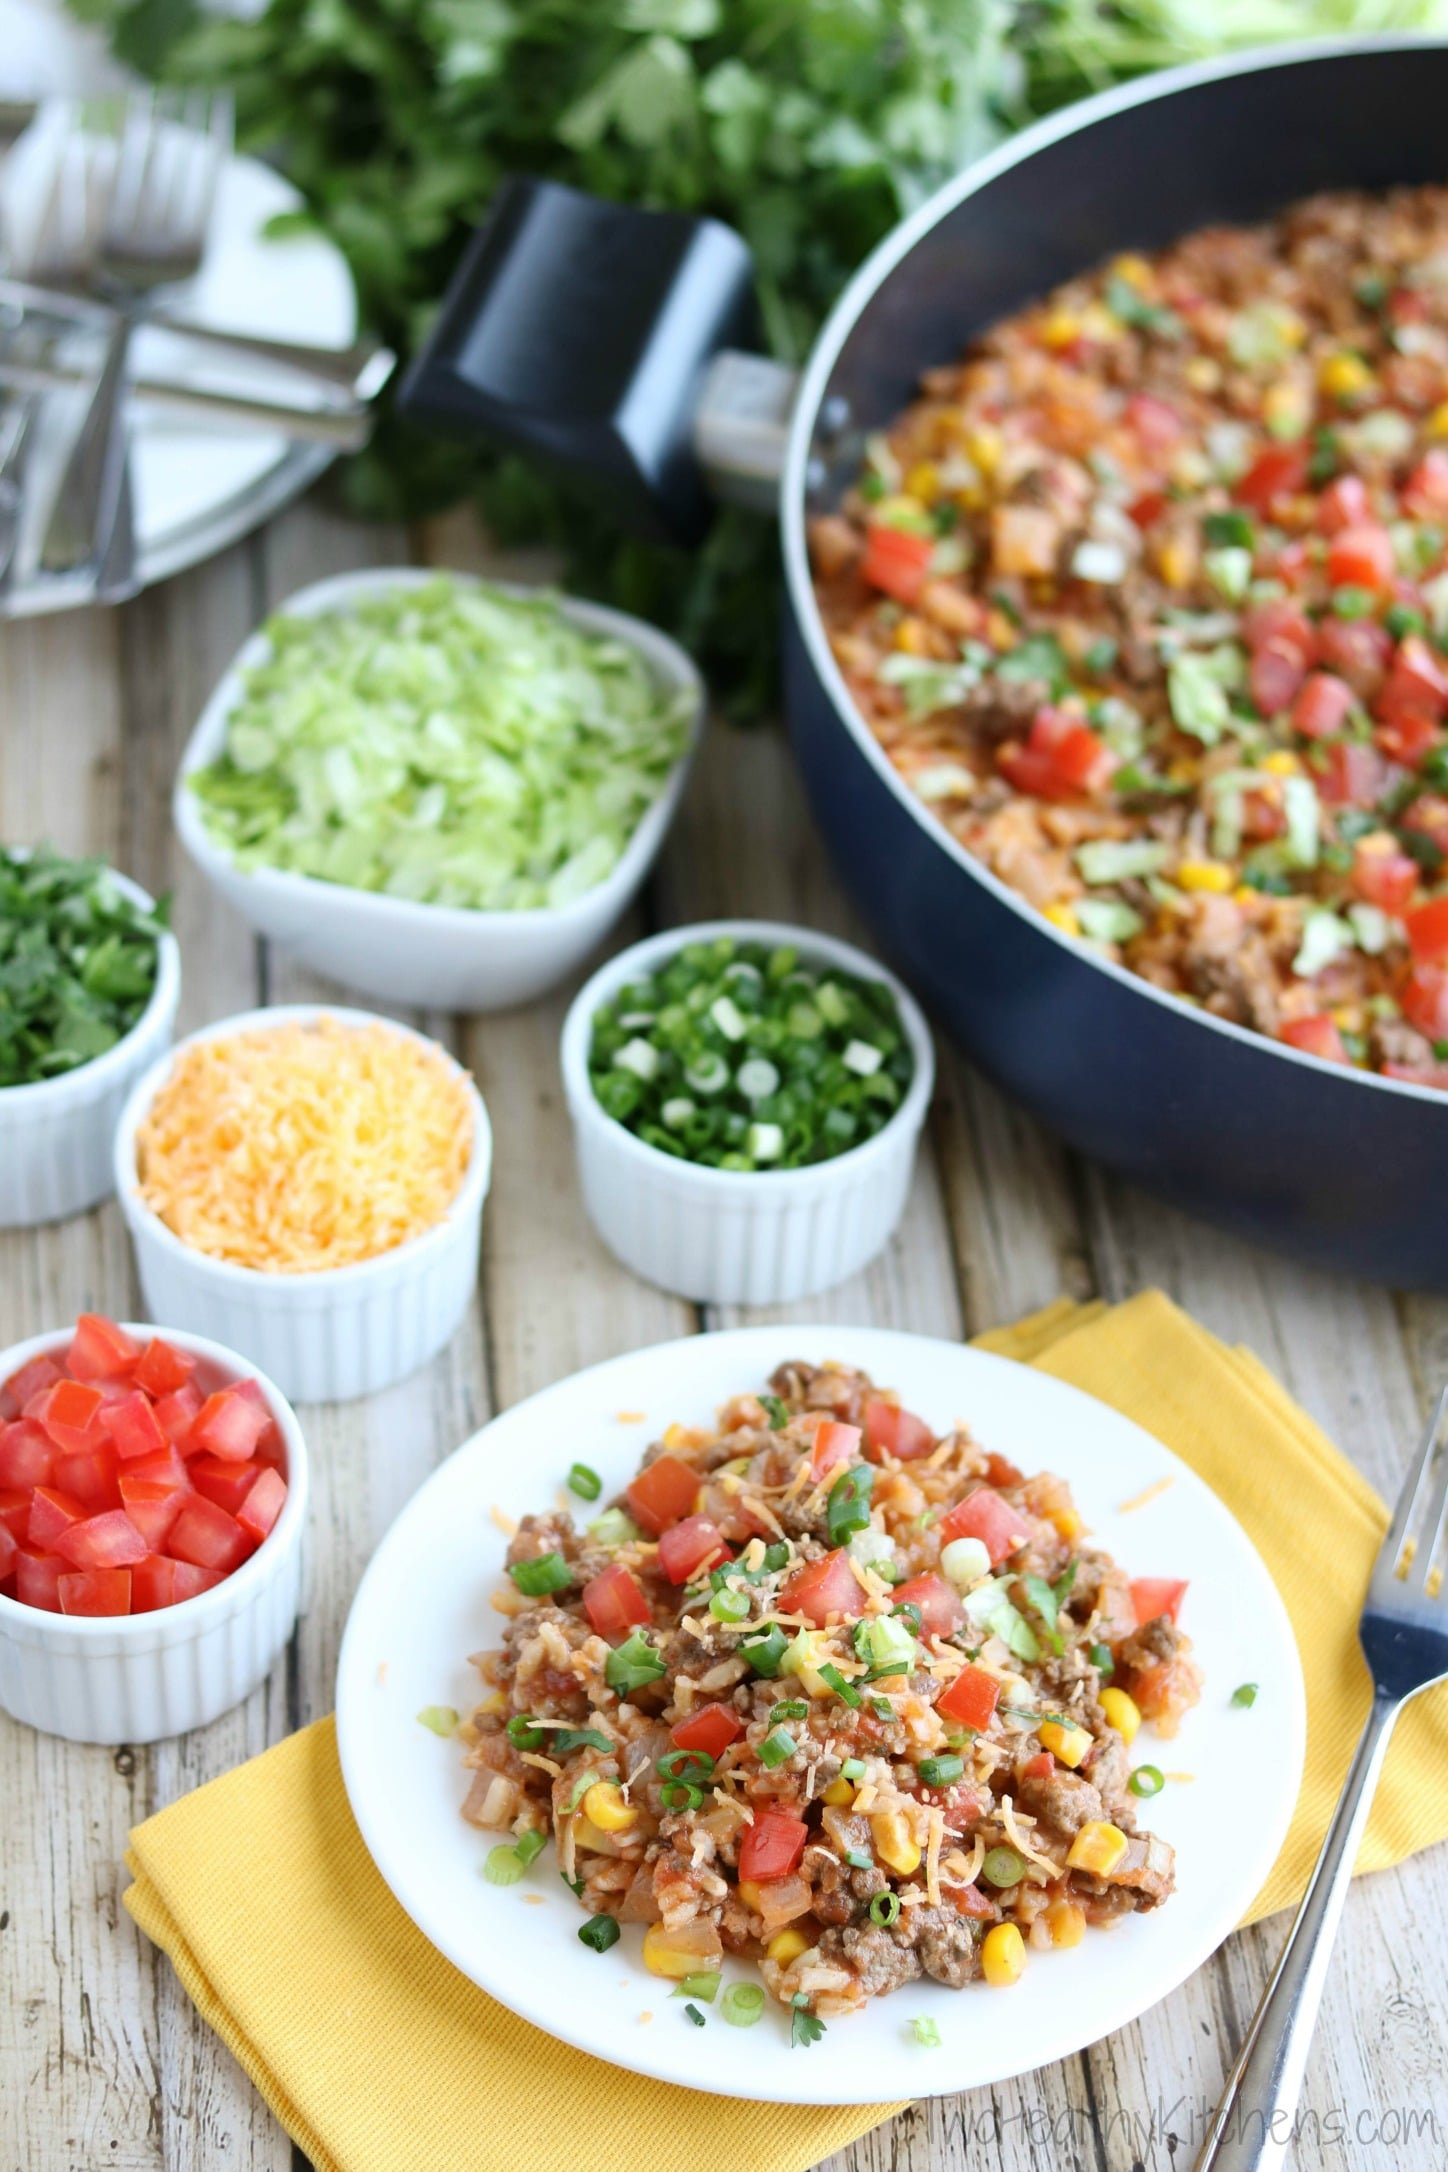 A fun, easy way to shake up the typical Taco night! This Mexican Rice Skillet Dinner is ready in just 30 minutes! Loaded with yummy Tex-Mex flavor, it's a quick, one-pot dinner recipe your whole family will love! | www.TwoHealthyKitchens.com